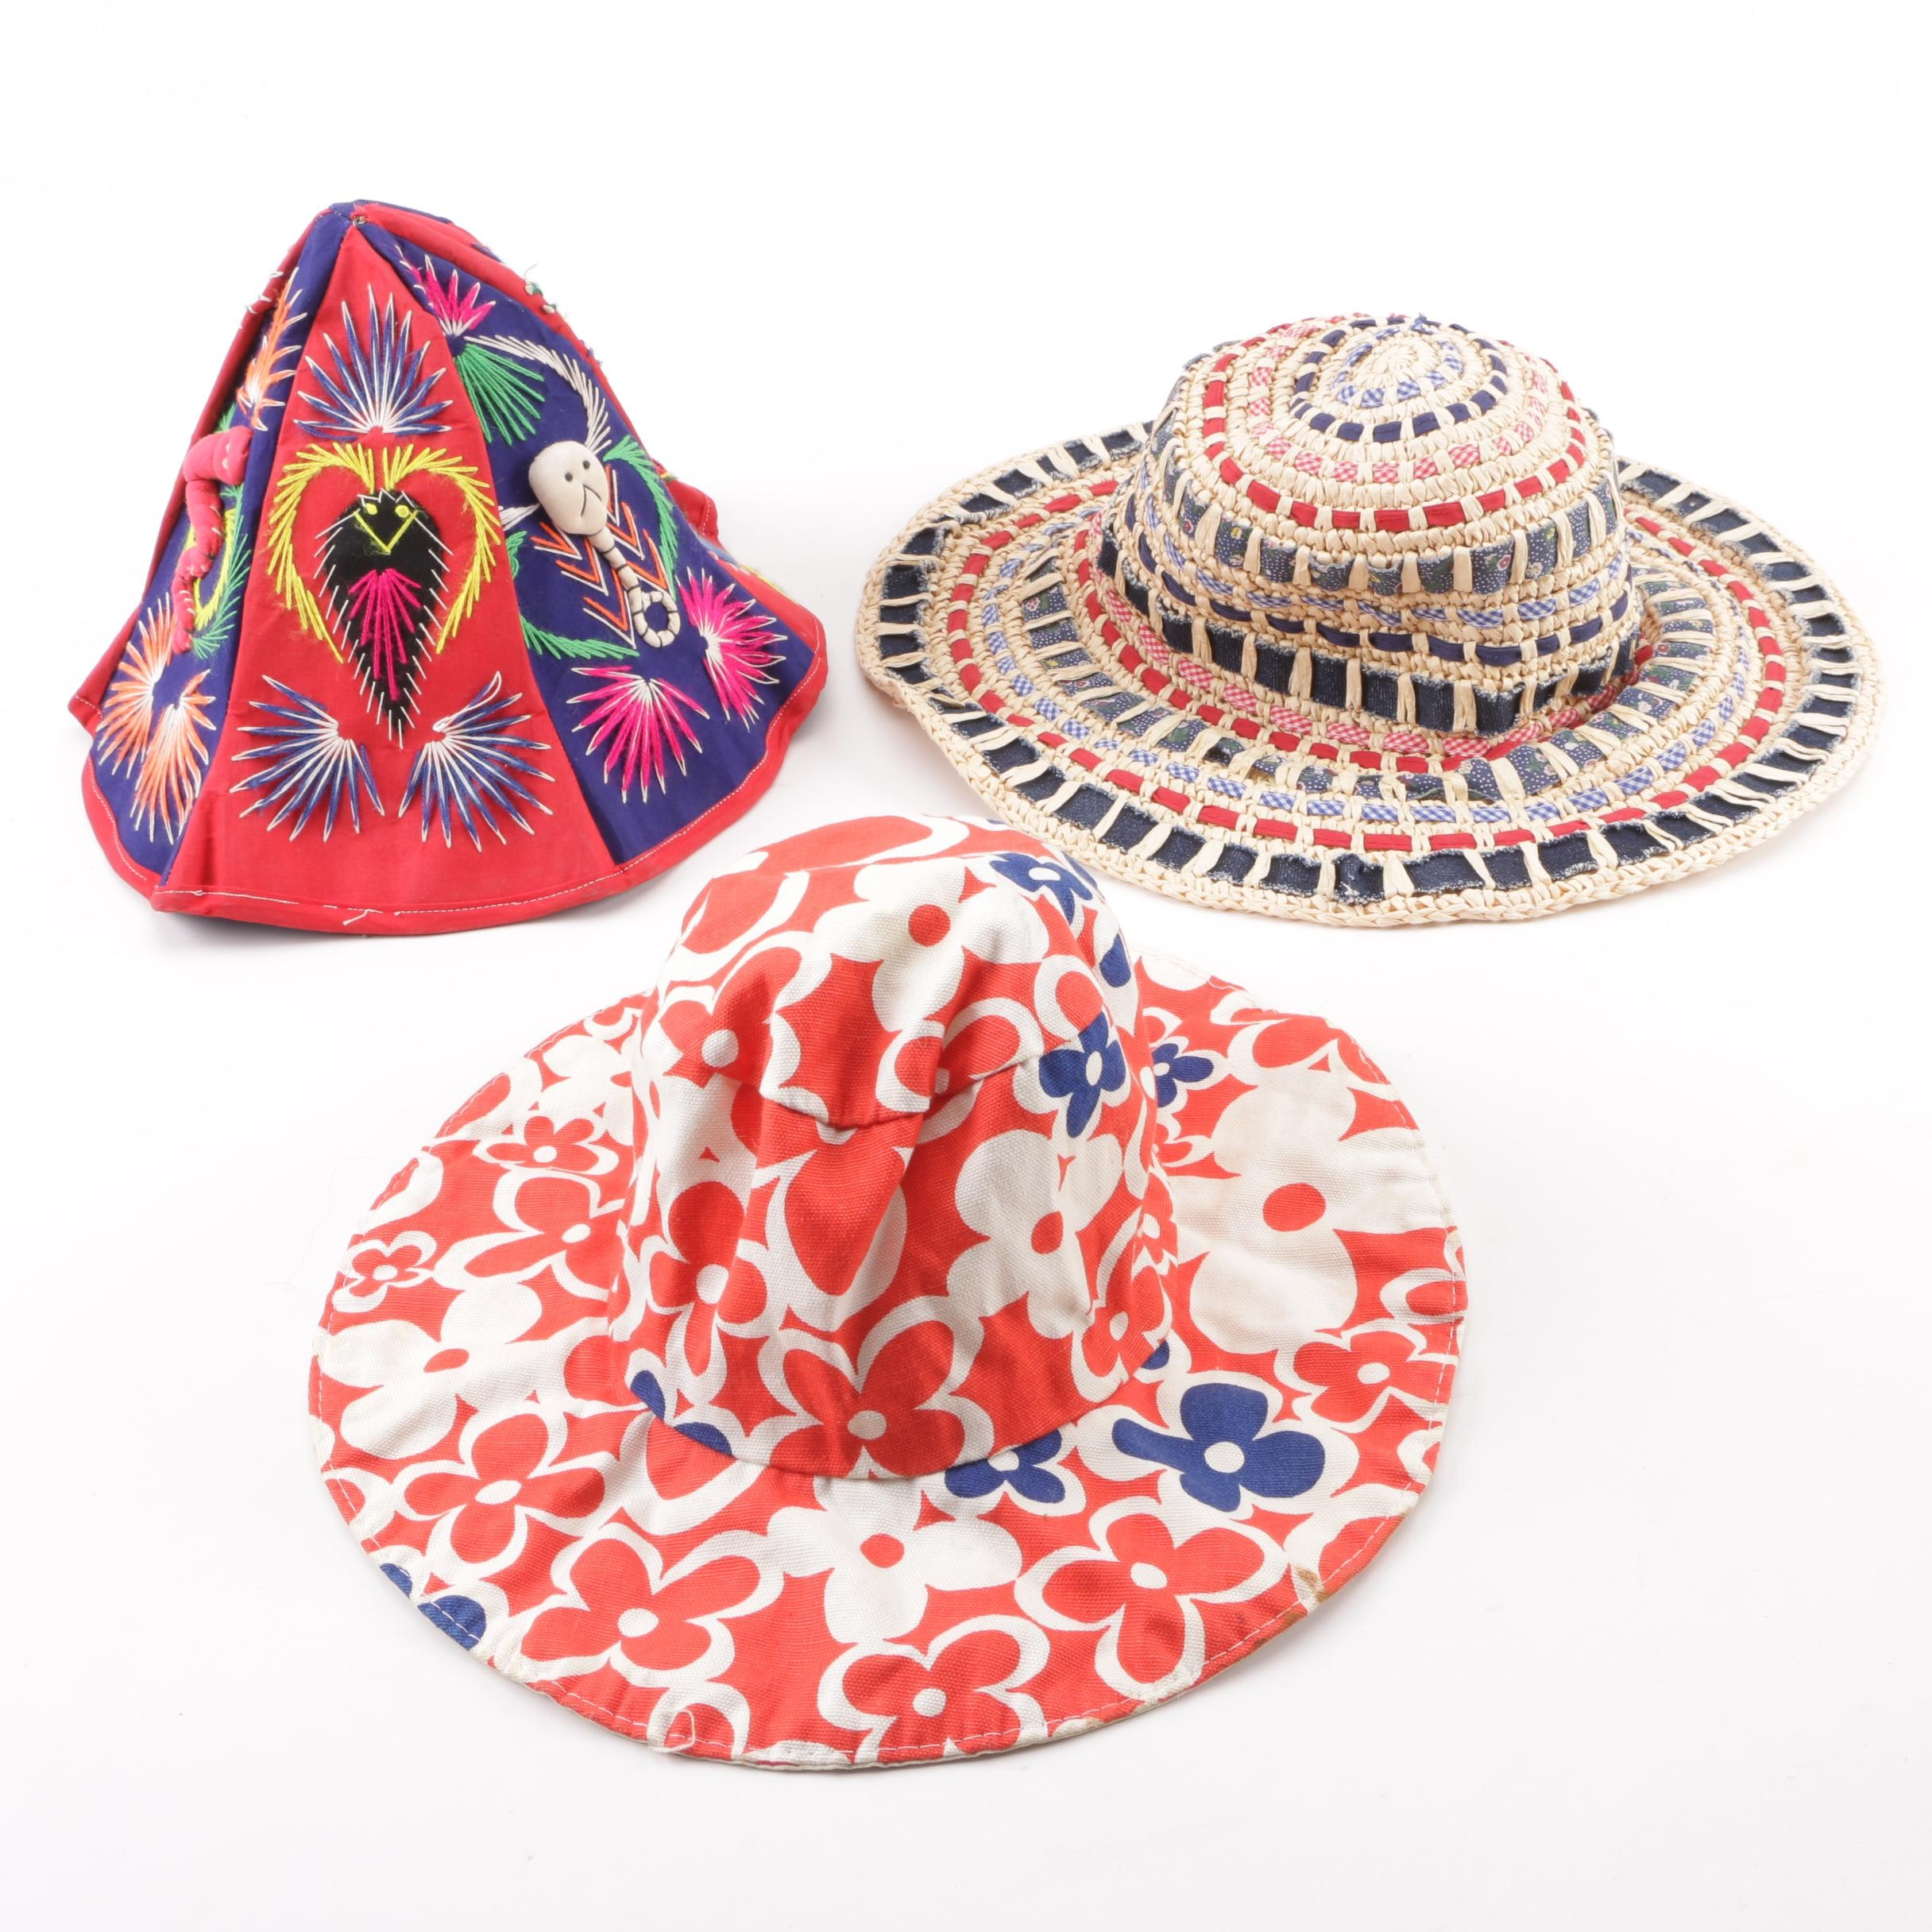 Women's Vintage Sun Hats and Embroidered Multicolor Souvenir Bucket Hat